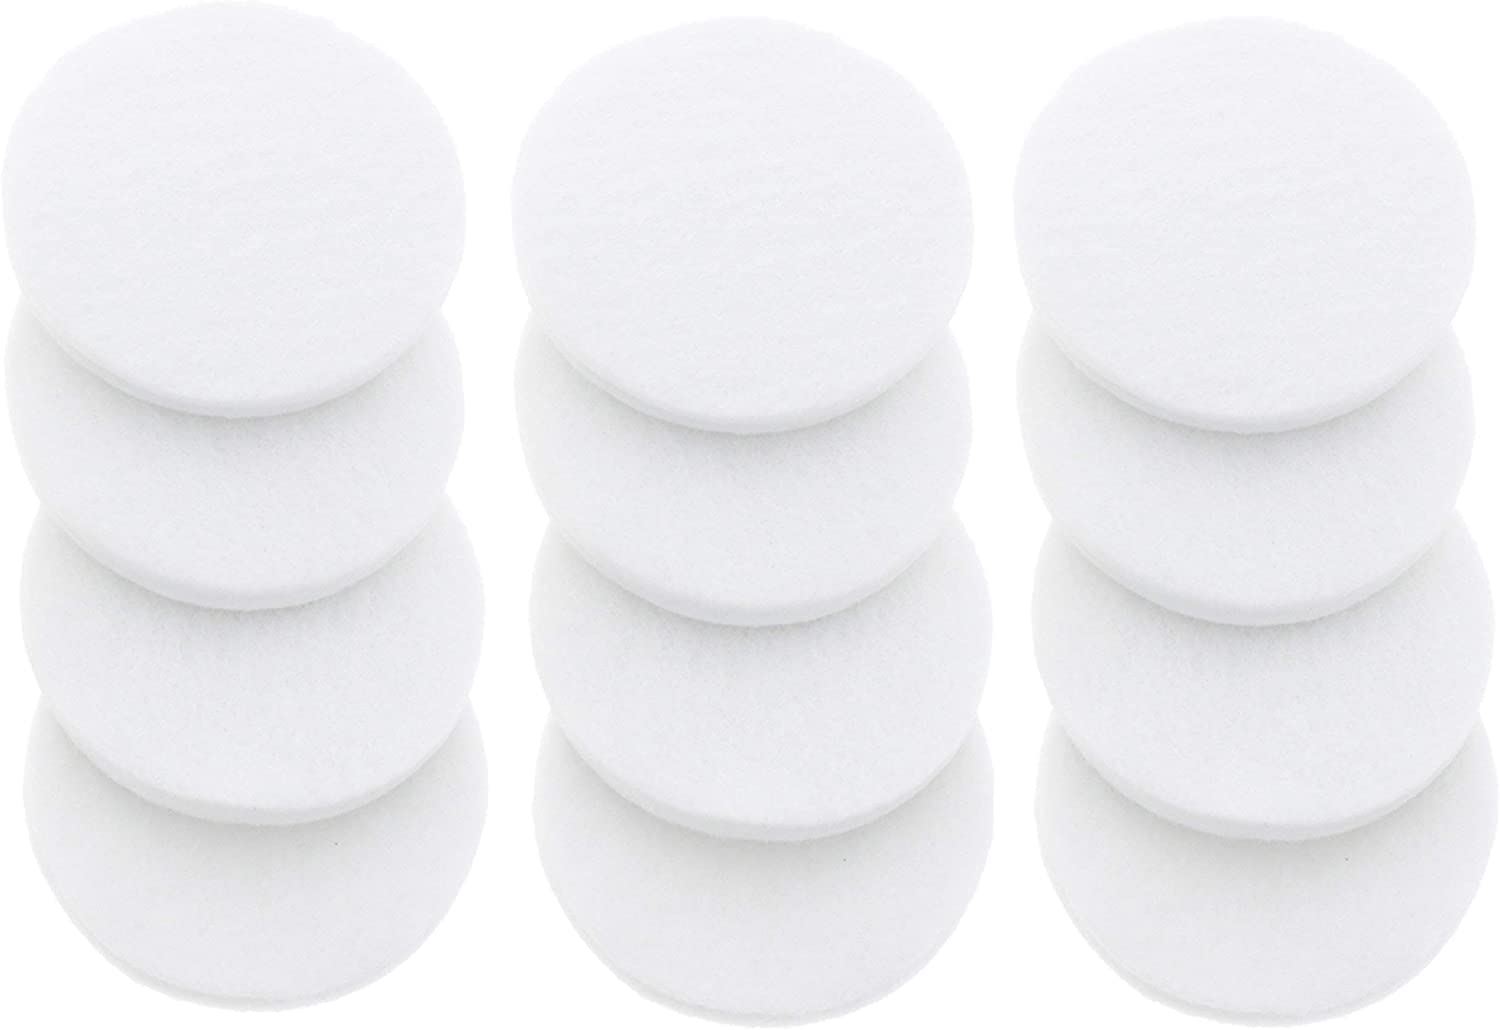 12 PACK Replacement Coffee Filters For The Toddy Cold Brew System/Toddy Maker By Essential Values